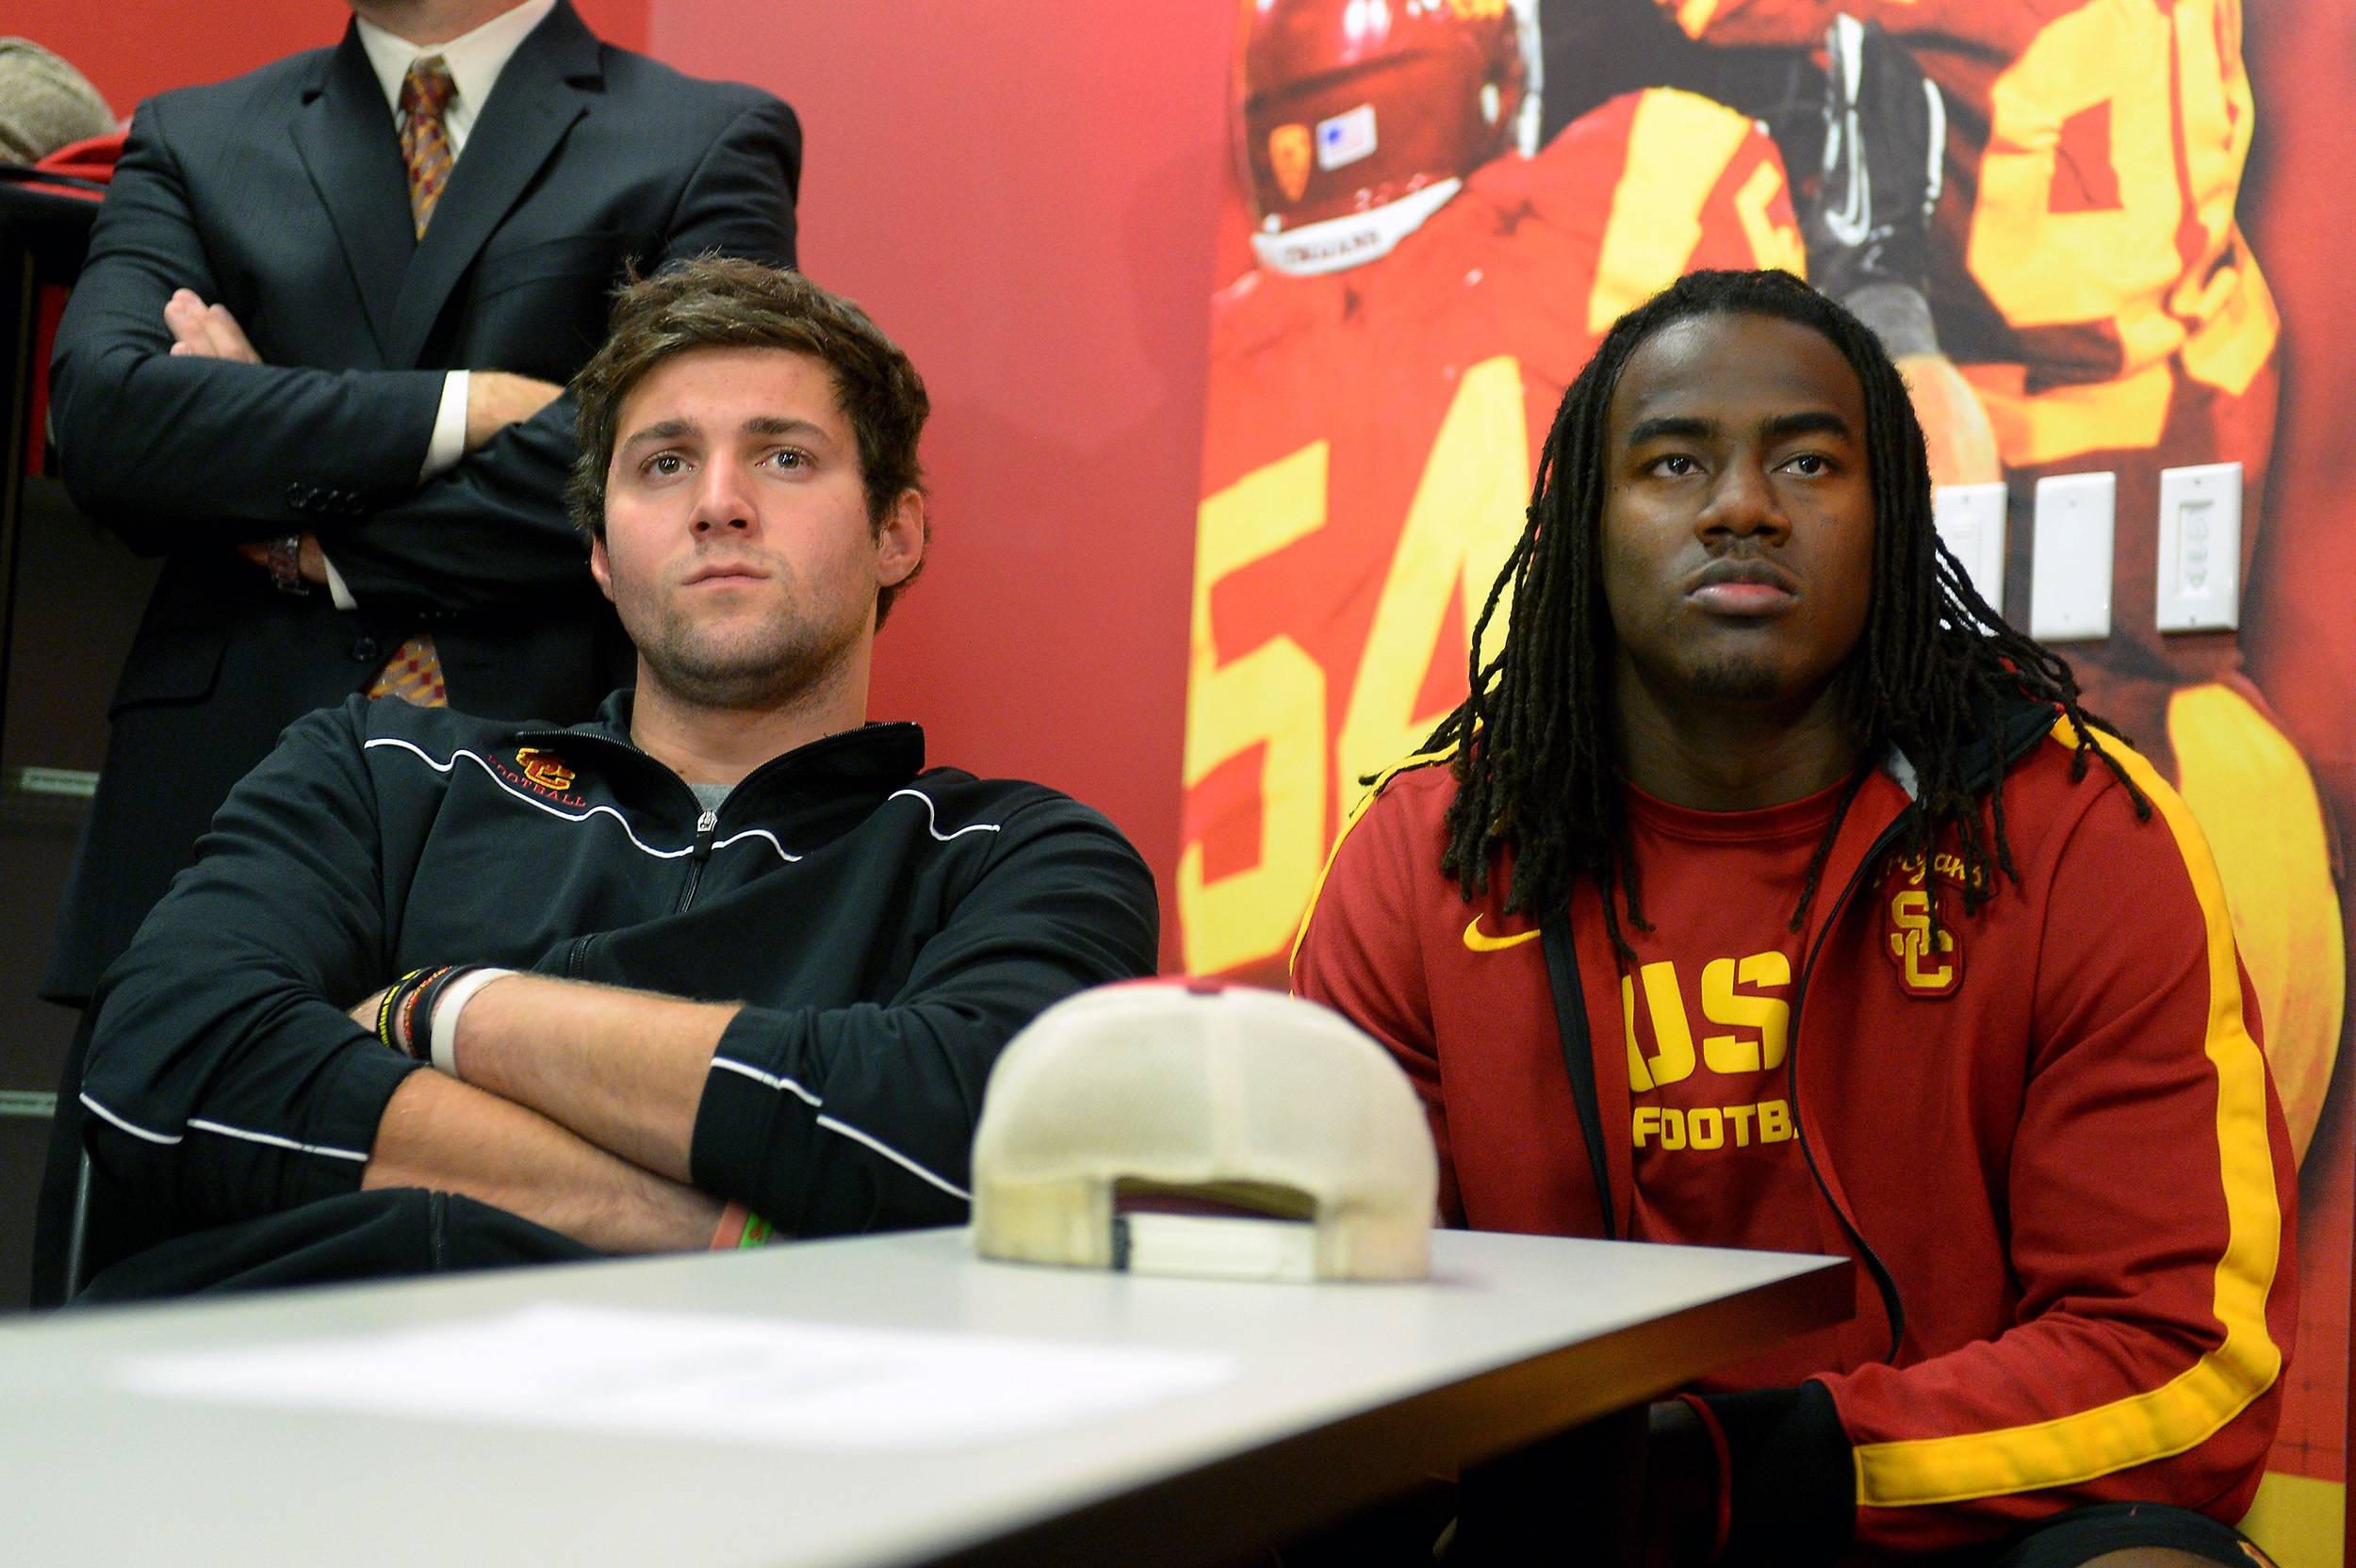 "FILE - In this Dec. 3, 2013, file photo, Southern California quarterback Cody Kessler, left, and Josh Shaw watch a news conference for USC's new football coach Steve Sarkisian in Los Angeles. Shaw has admitted to lying to school officials about how he sprained his ankles last weekend, retracting his story about jumping off a balcony to save his drowning nephew. Shaw has been suspended indefinitely from all of the Trojans' team activities after acknowledging his heroic tale was ""a complete fabrication,"" the school announced in a statement Wednesday, Aug. 27, 2014. (AP Photo/Los Angeles Daily News, Michael Owen Baker, File) NO SALES; MAGAZINES OUT; HILLS OUT, LOS ANGELES TIMES OUT; VENTURA COUNTY STAR OUT; ANTELOPE VALLEY PRESS OUT"